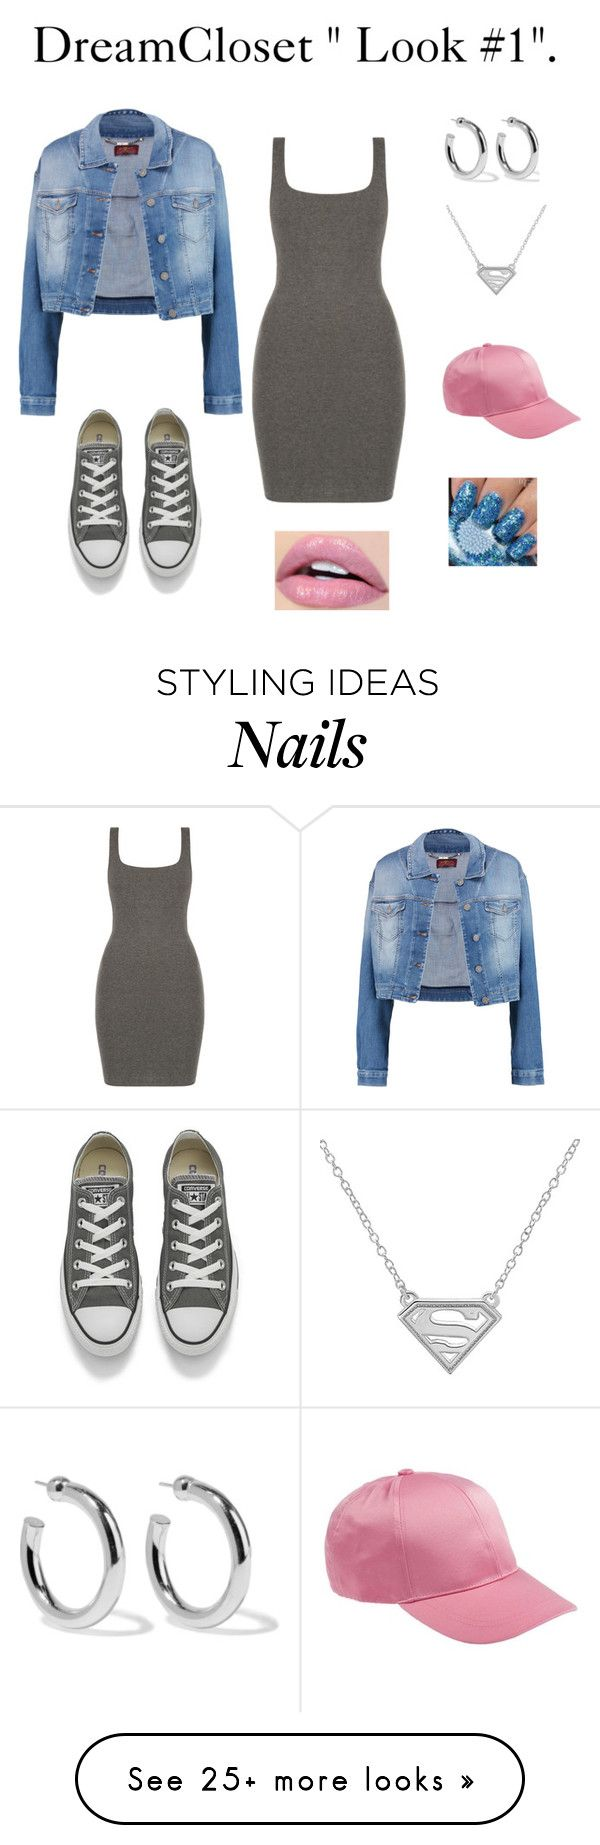 """""""Grey Dress """"Look #1"""" By DreamCloset"""" by dreamclosetx4 on Polyvore featuring 7 For All Mankind, Converse and Sophie Buhai"""